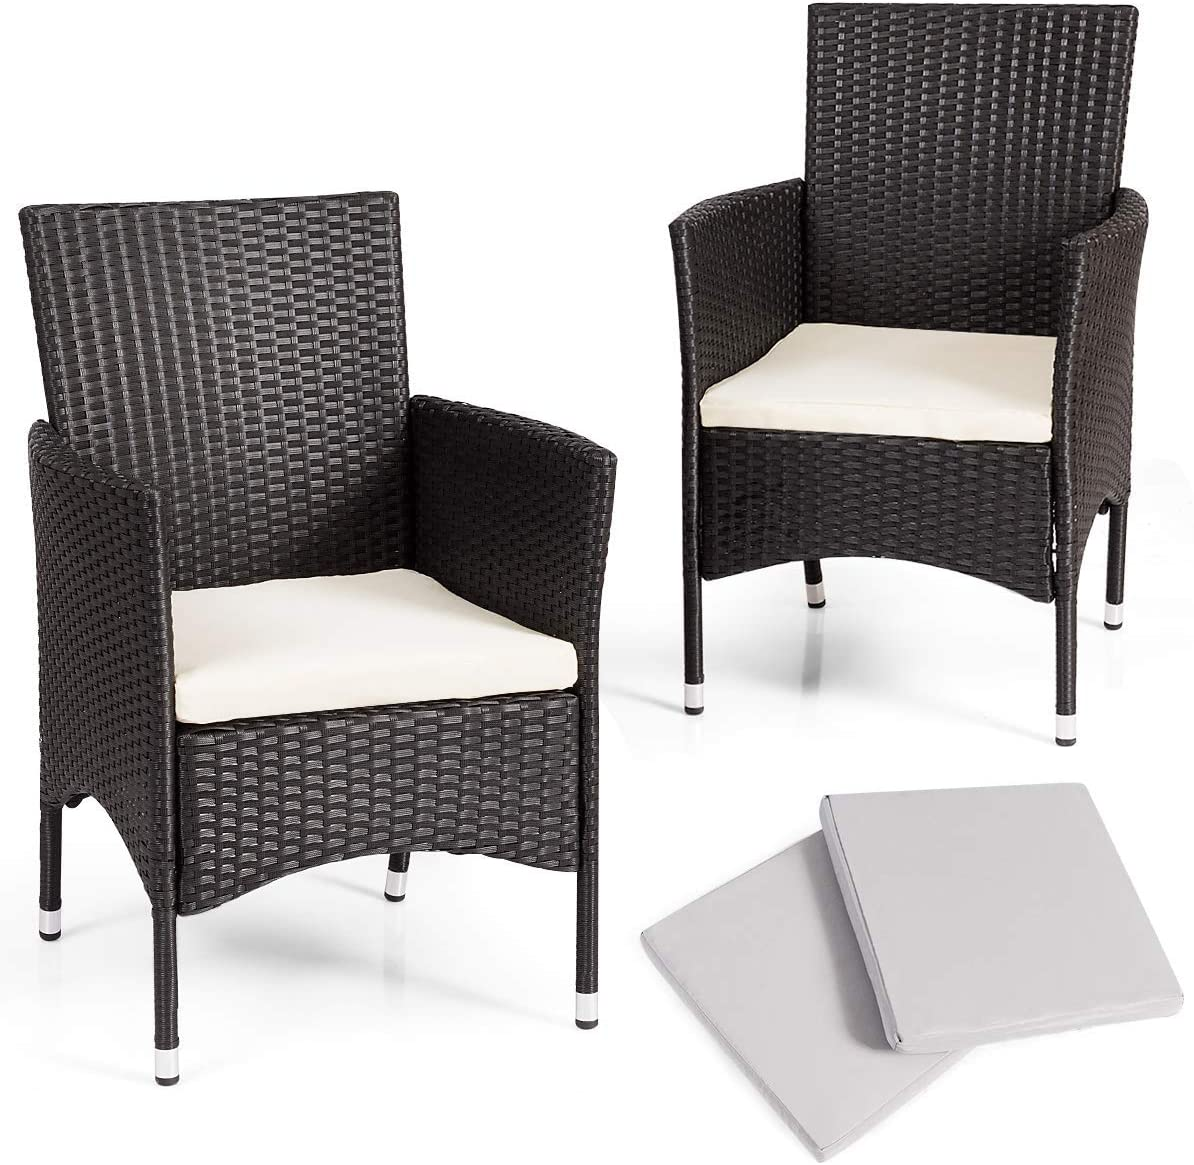 TANGKULA Set of 3 Patio Chairs, Outdoor Wicker Dining Chairs with Removable  Cushions, Armchairs for Garden, Porch, Poolside, Balcony, with 3 Cushion